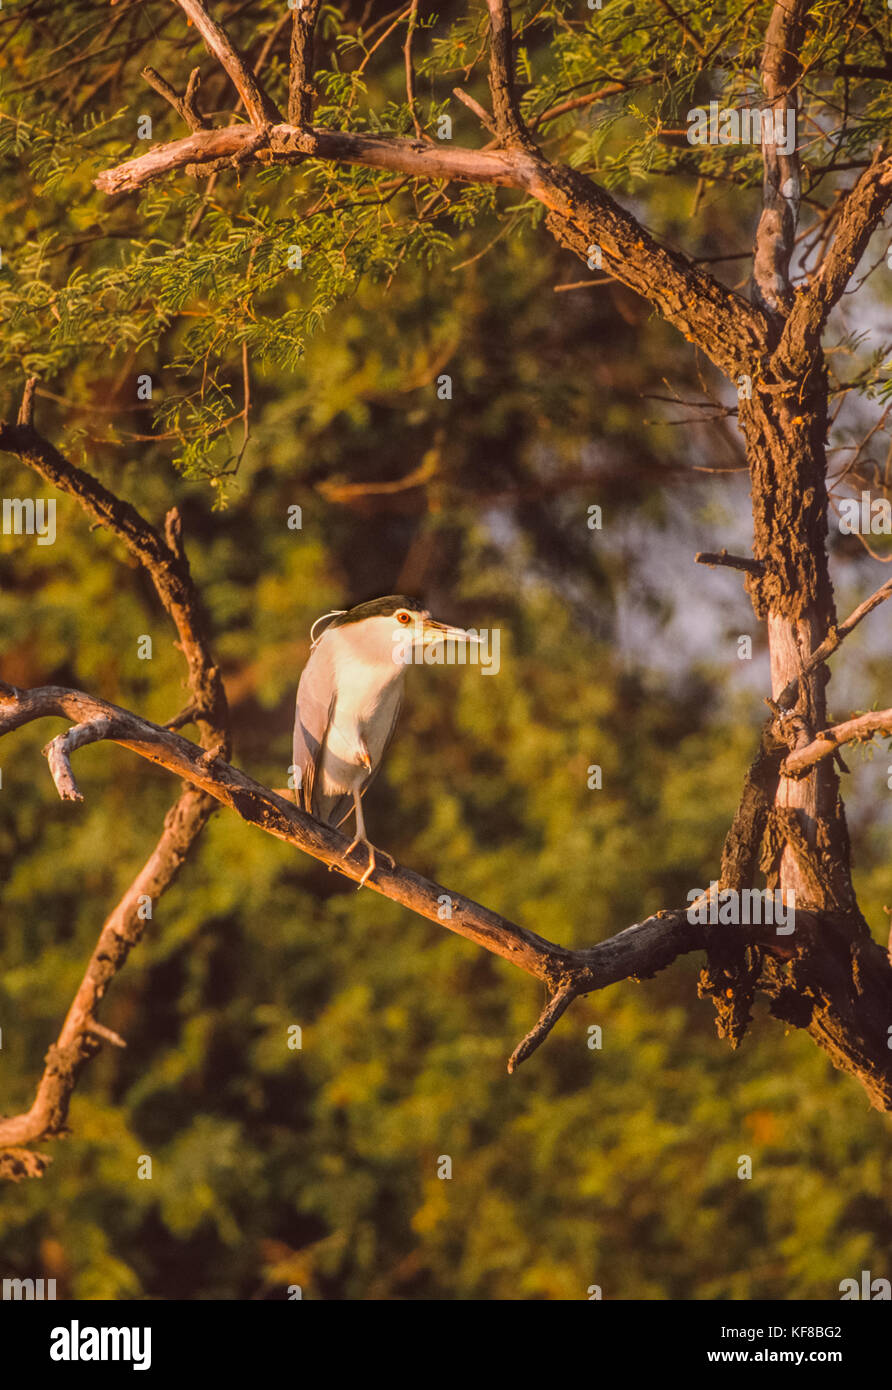 Black-Crowned Night Heron,  (Nycticorax nycticorax), perched in tree, Keoladeo Ghana National Park, Bharatpur, Rajasthan, - Stock Image